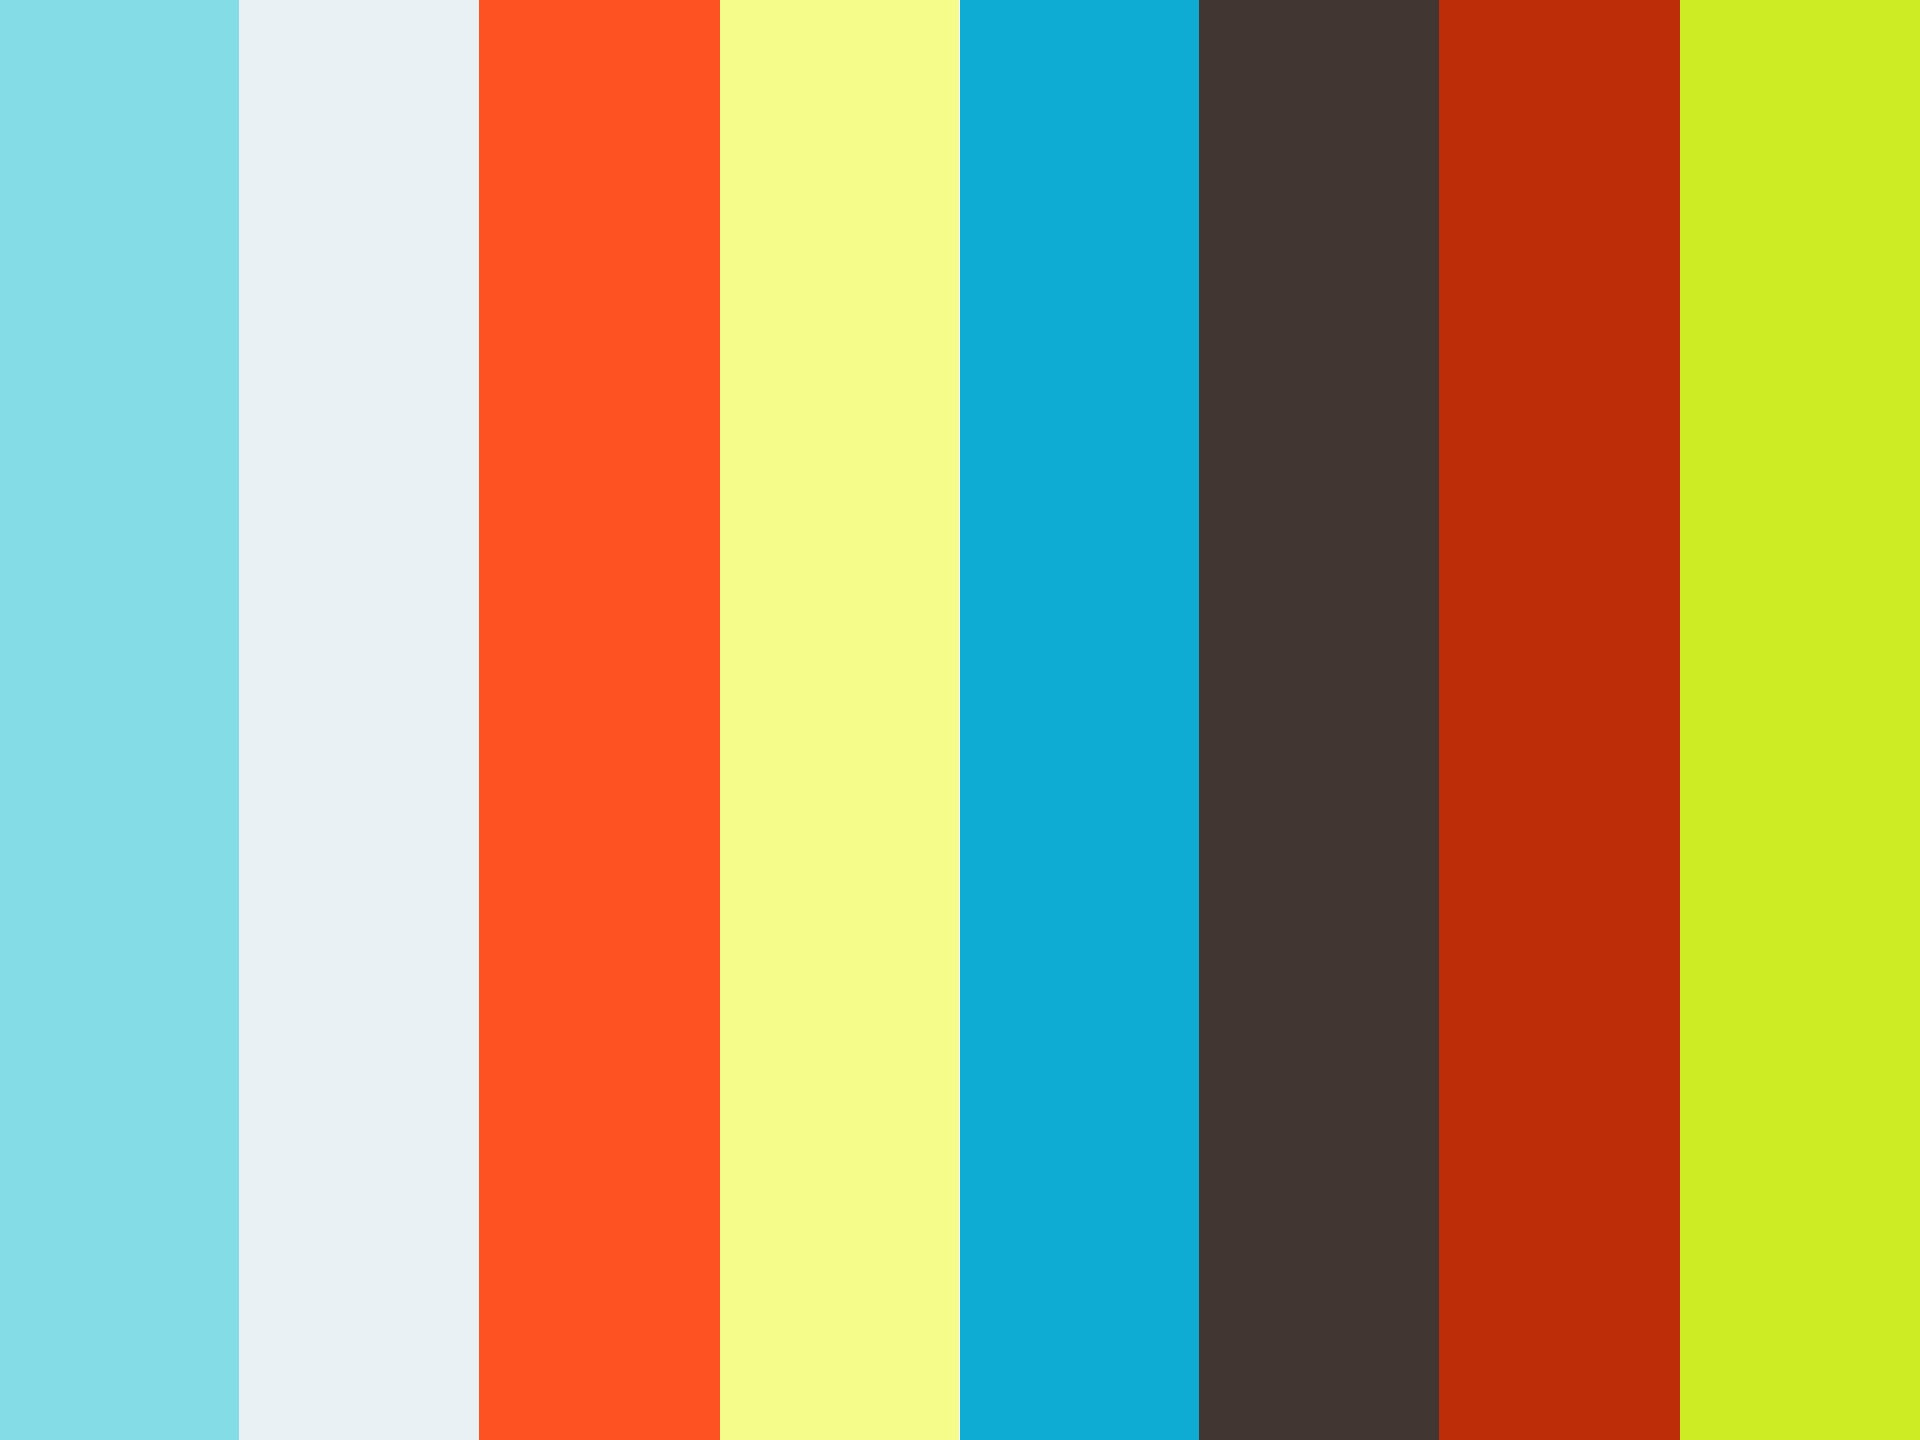 Lymph Node Assessment by MRI after Neoadjuvant Chemoradiation for Rectal Cancer- No Means No! 2013